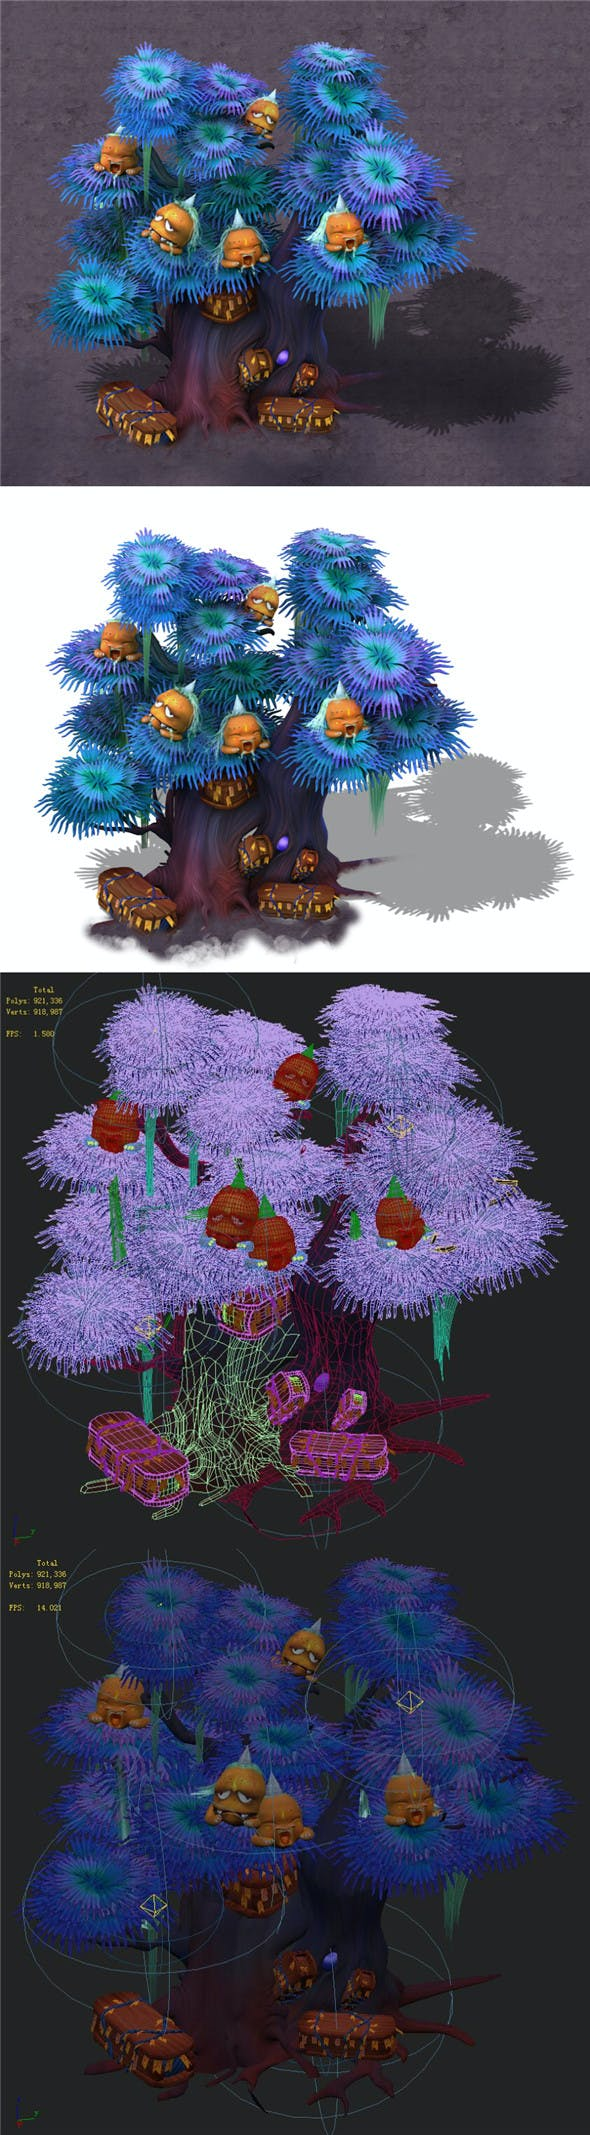 Cartoon hell - ghost coffin tree 04 - 3DOcean Item for Sale